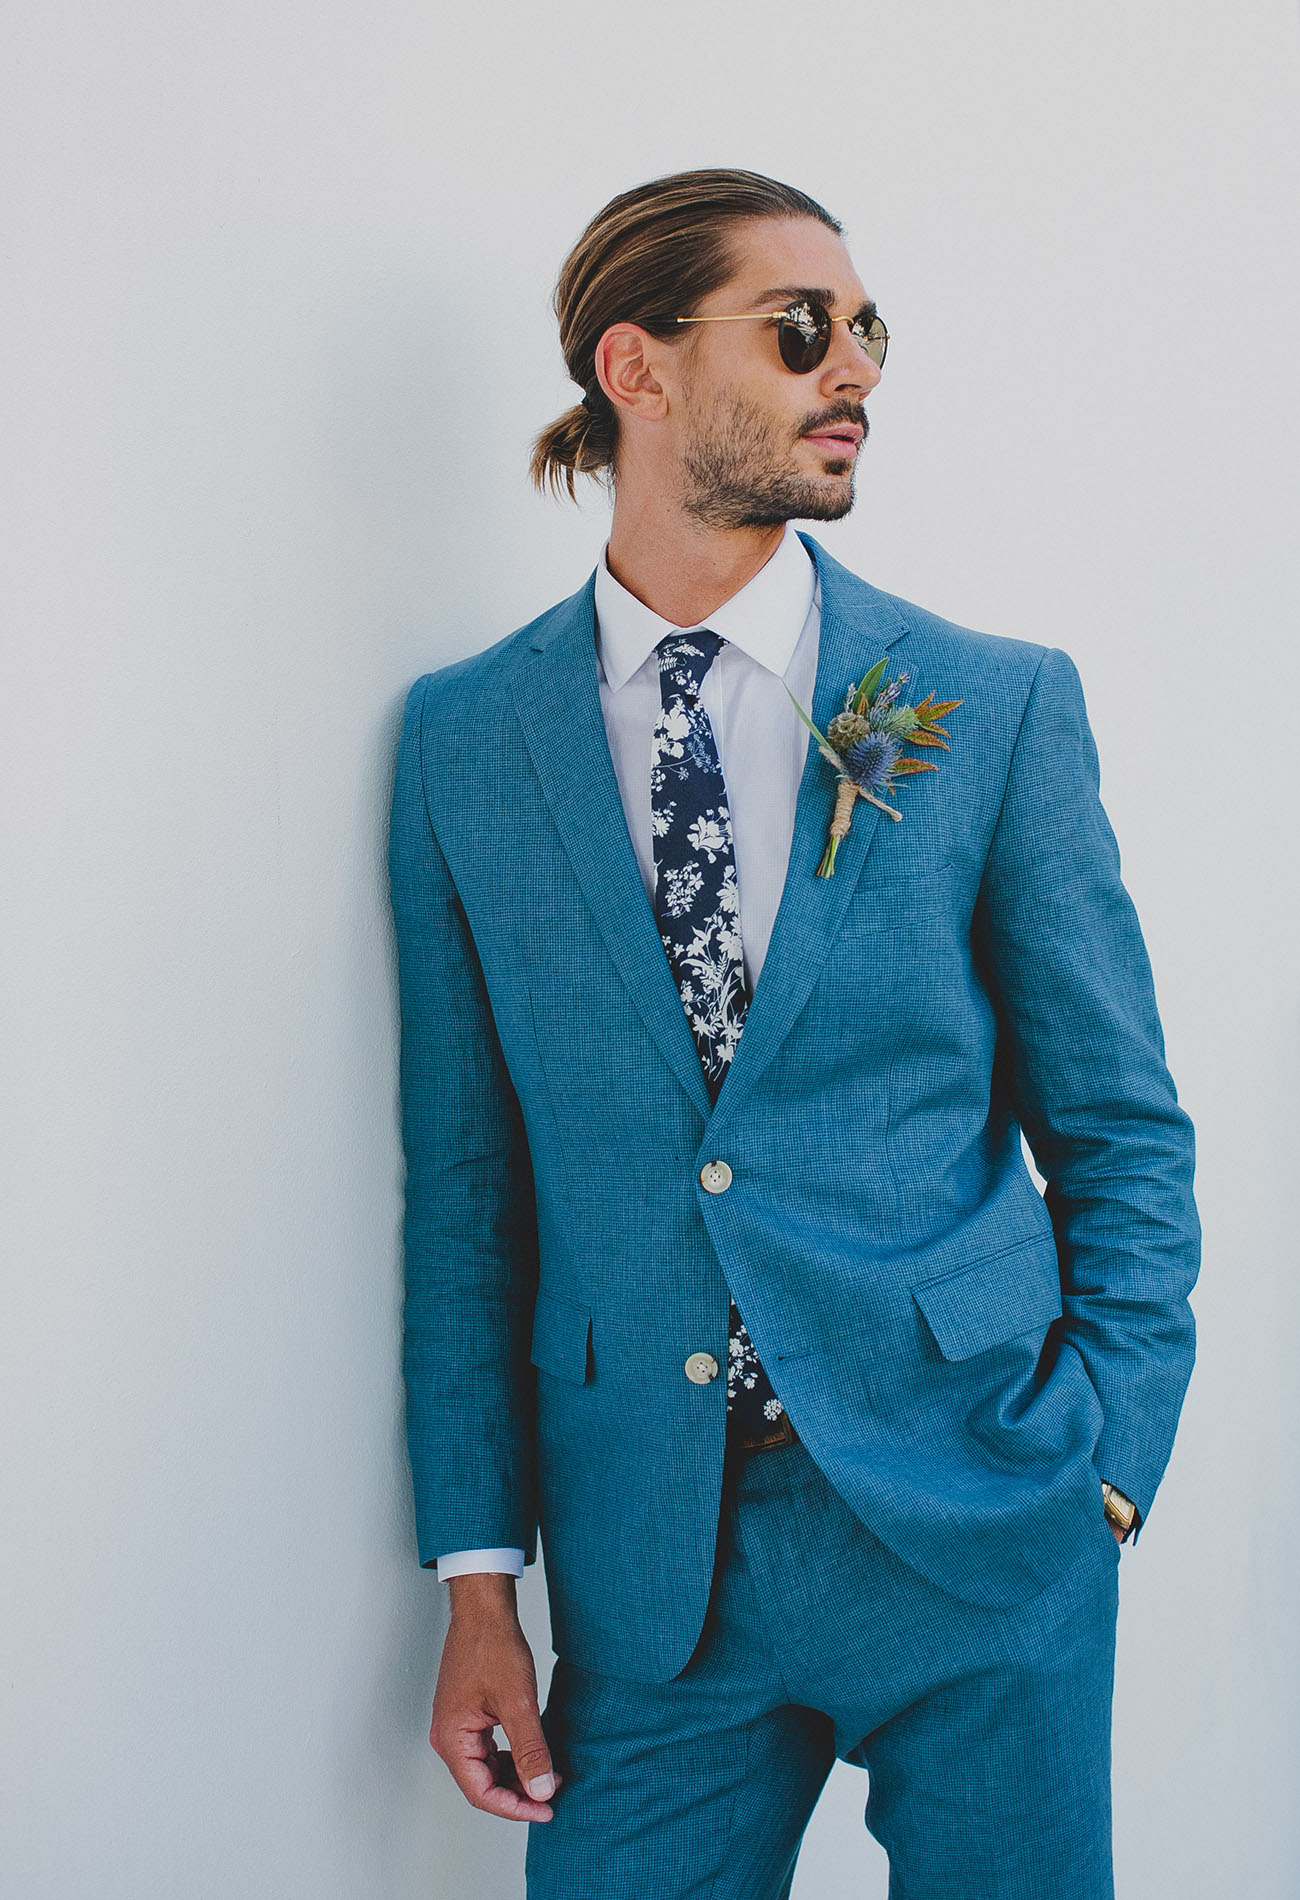 GWS x Neck & Tie Company Collection is here! The Creative\'s Loft Groom